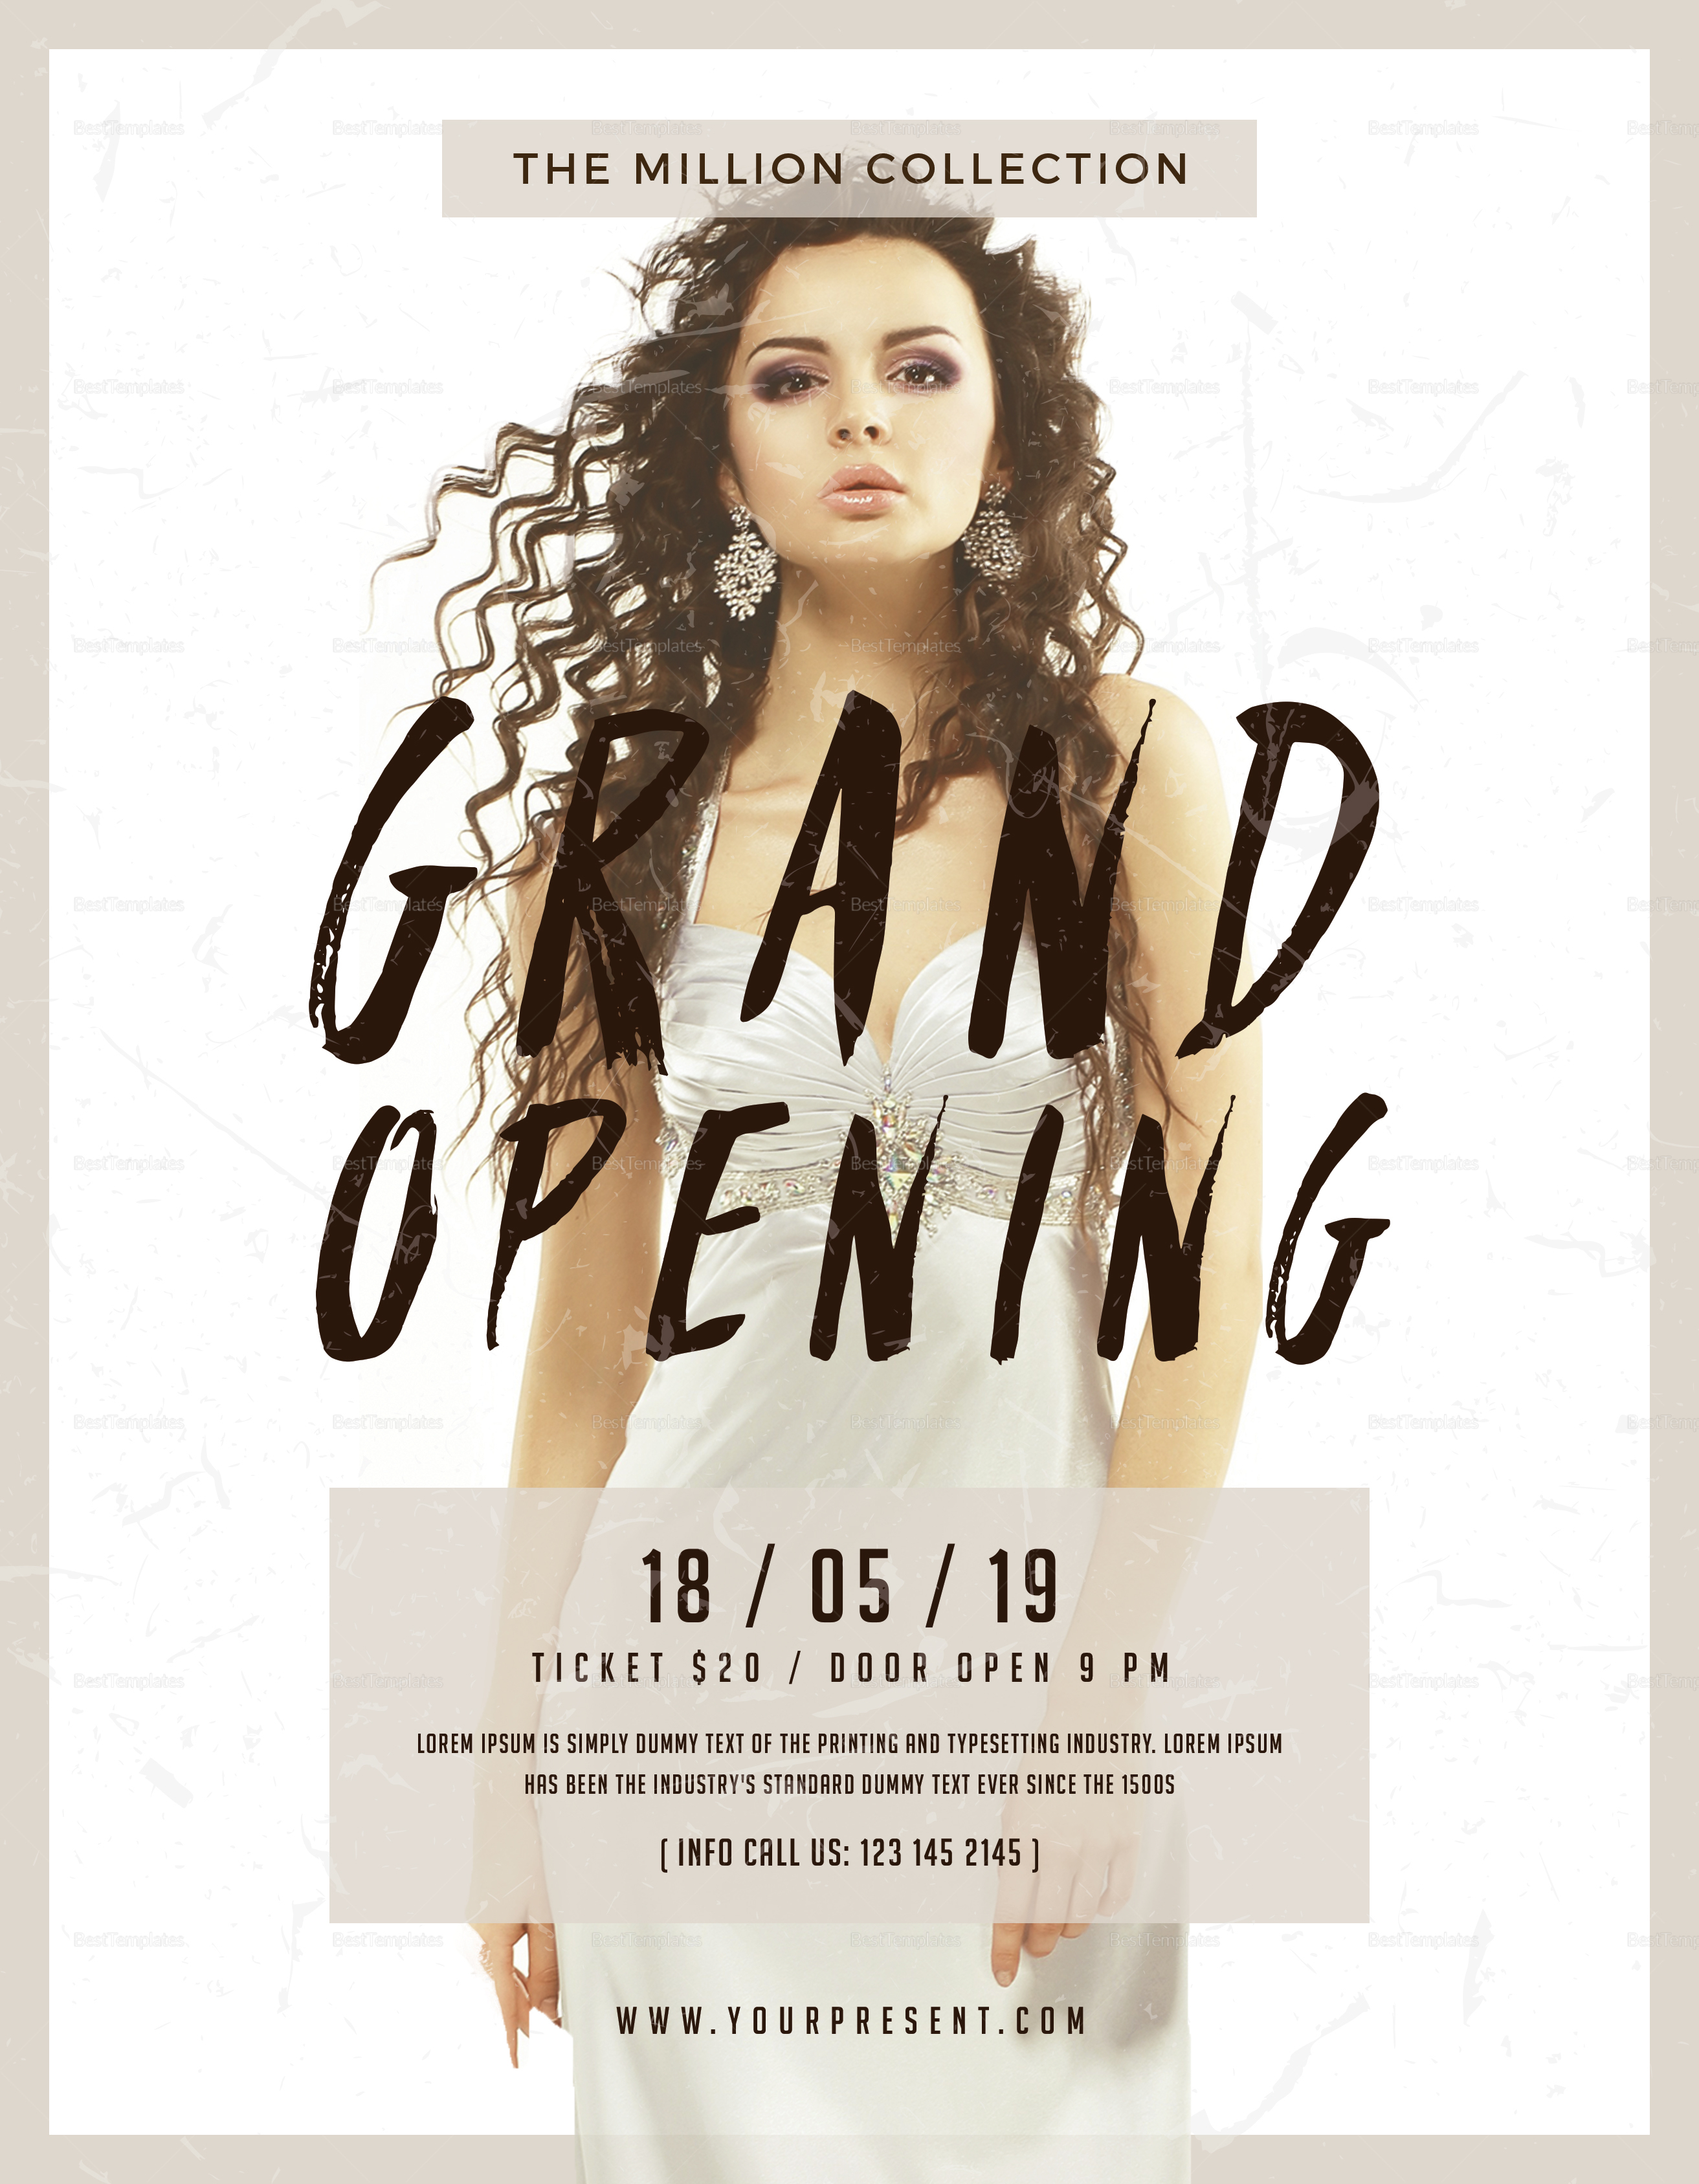 grand opening flyer design template in psd word publisher illustrator